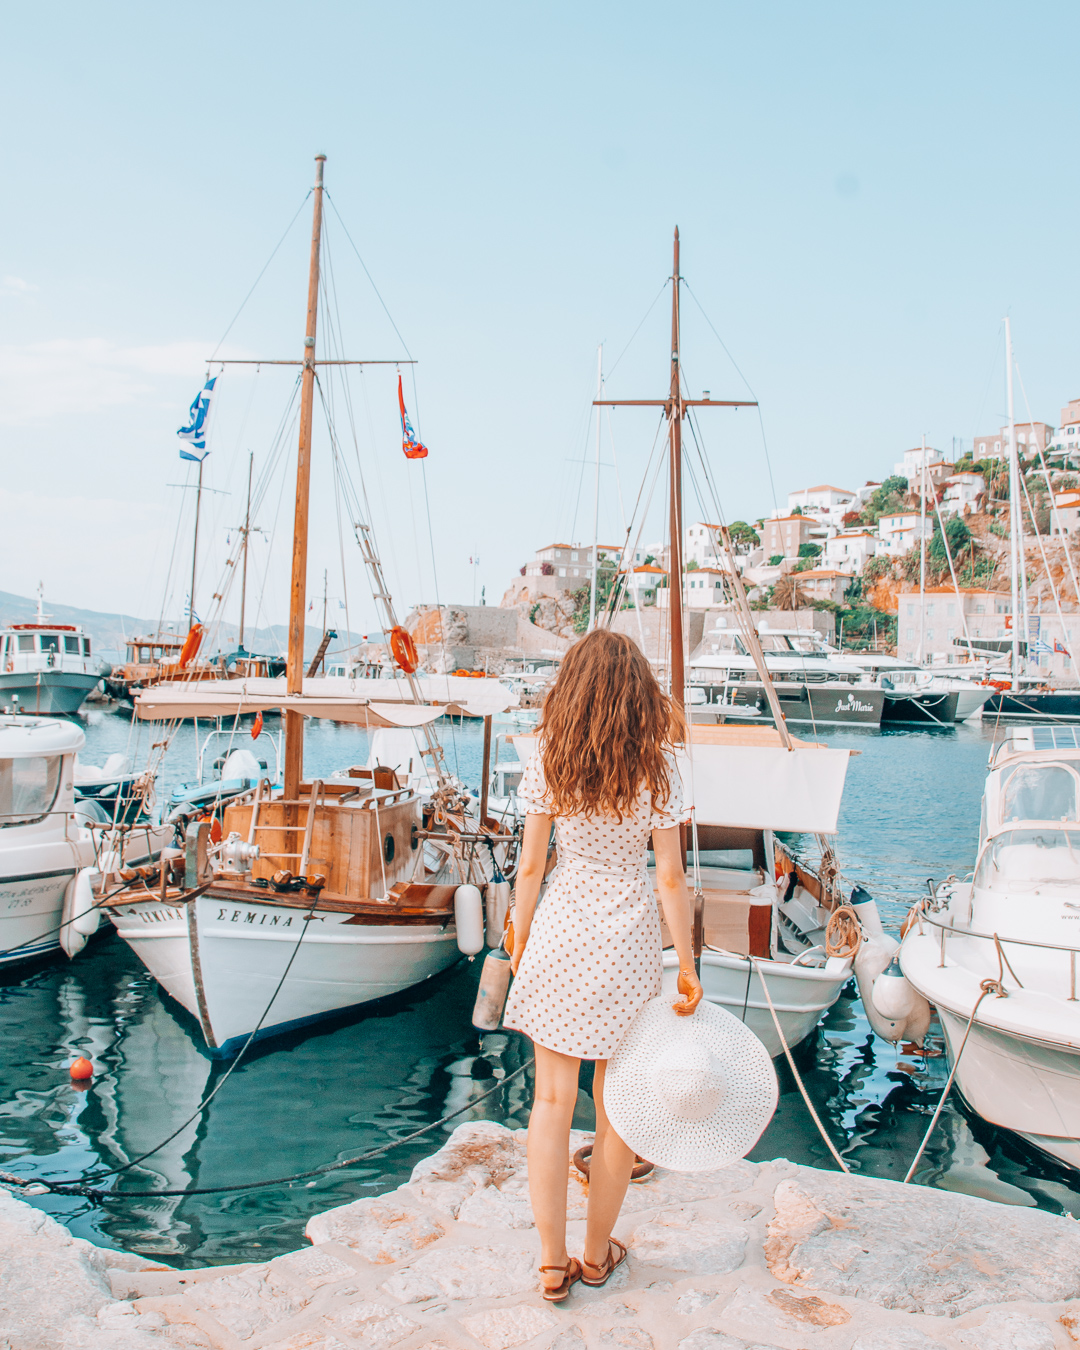 Girl and boats in Hydra